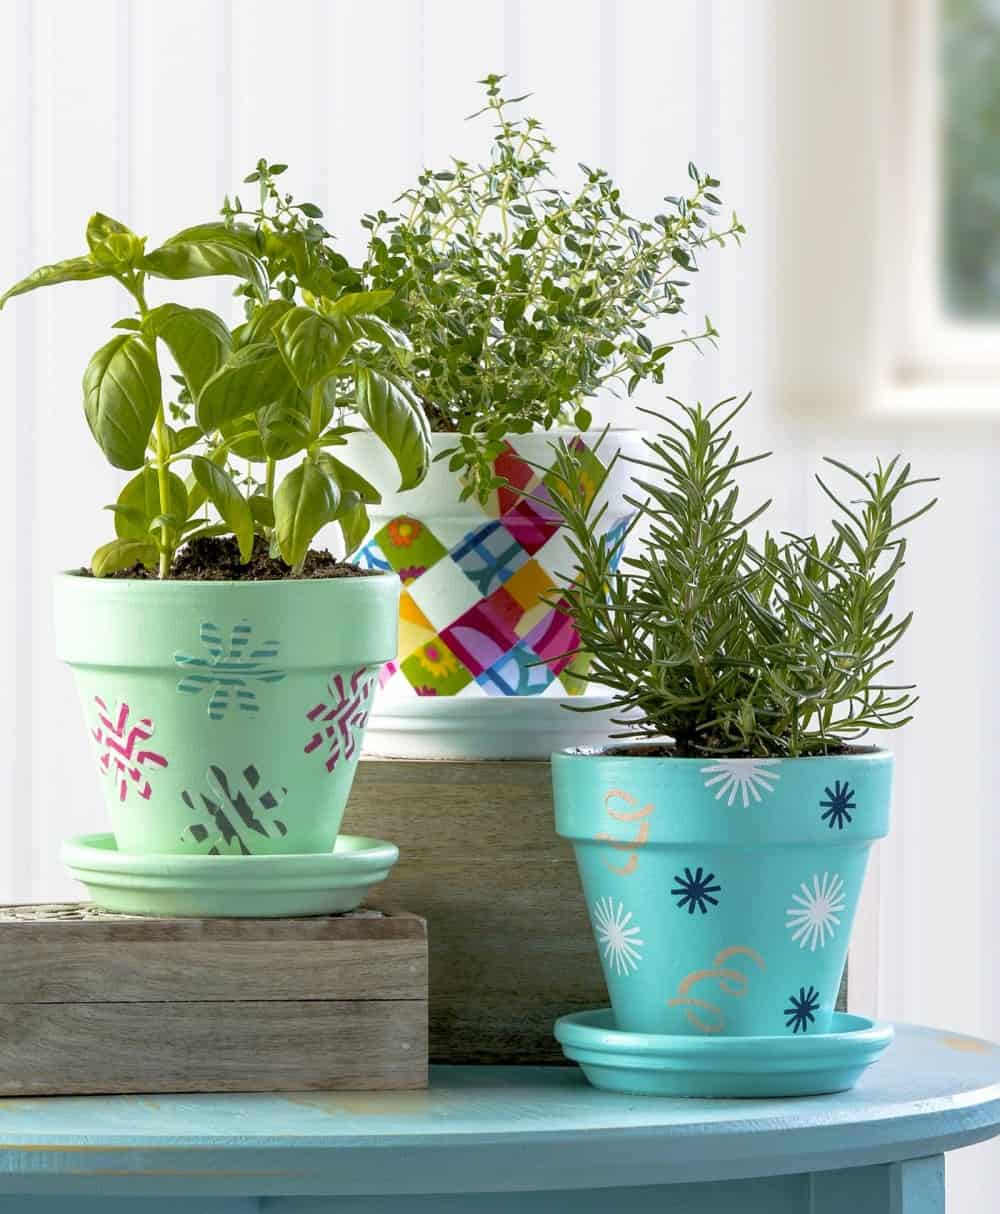 Flower pot decoration using fabric stencils and washi tape : flower pots decoration ideas - www.pureclipart.com